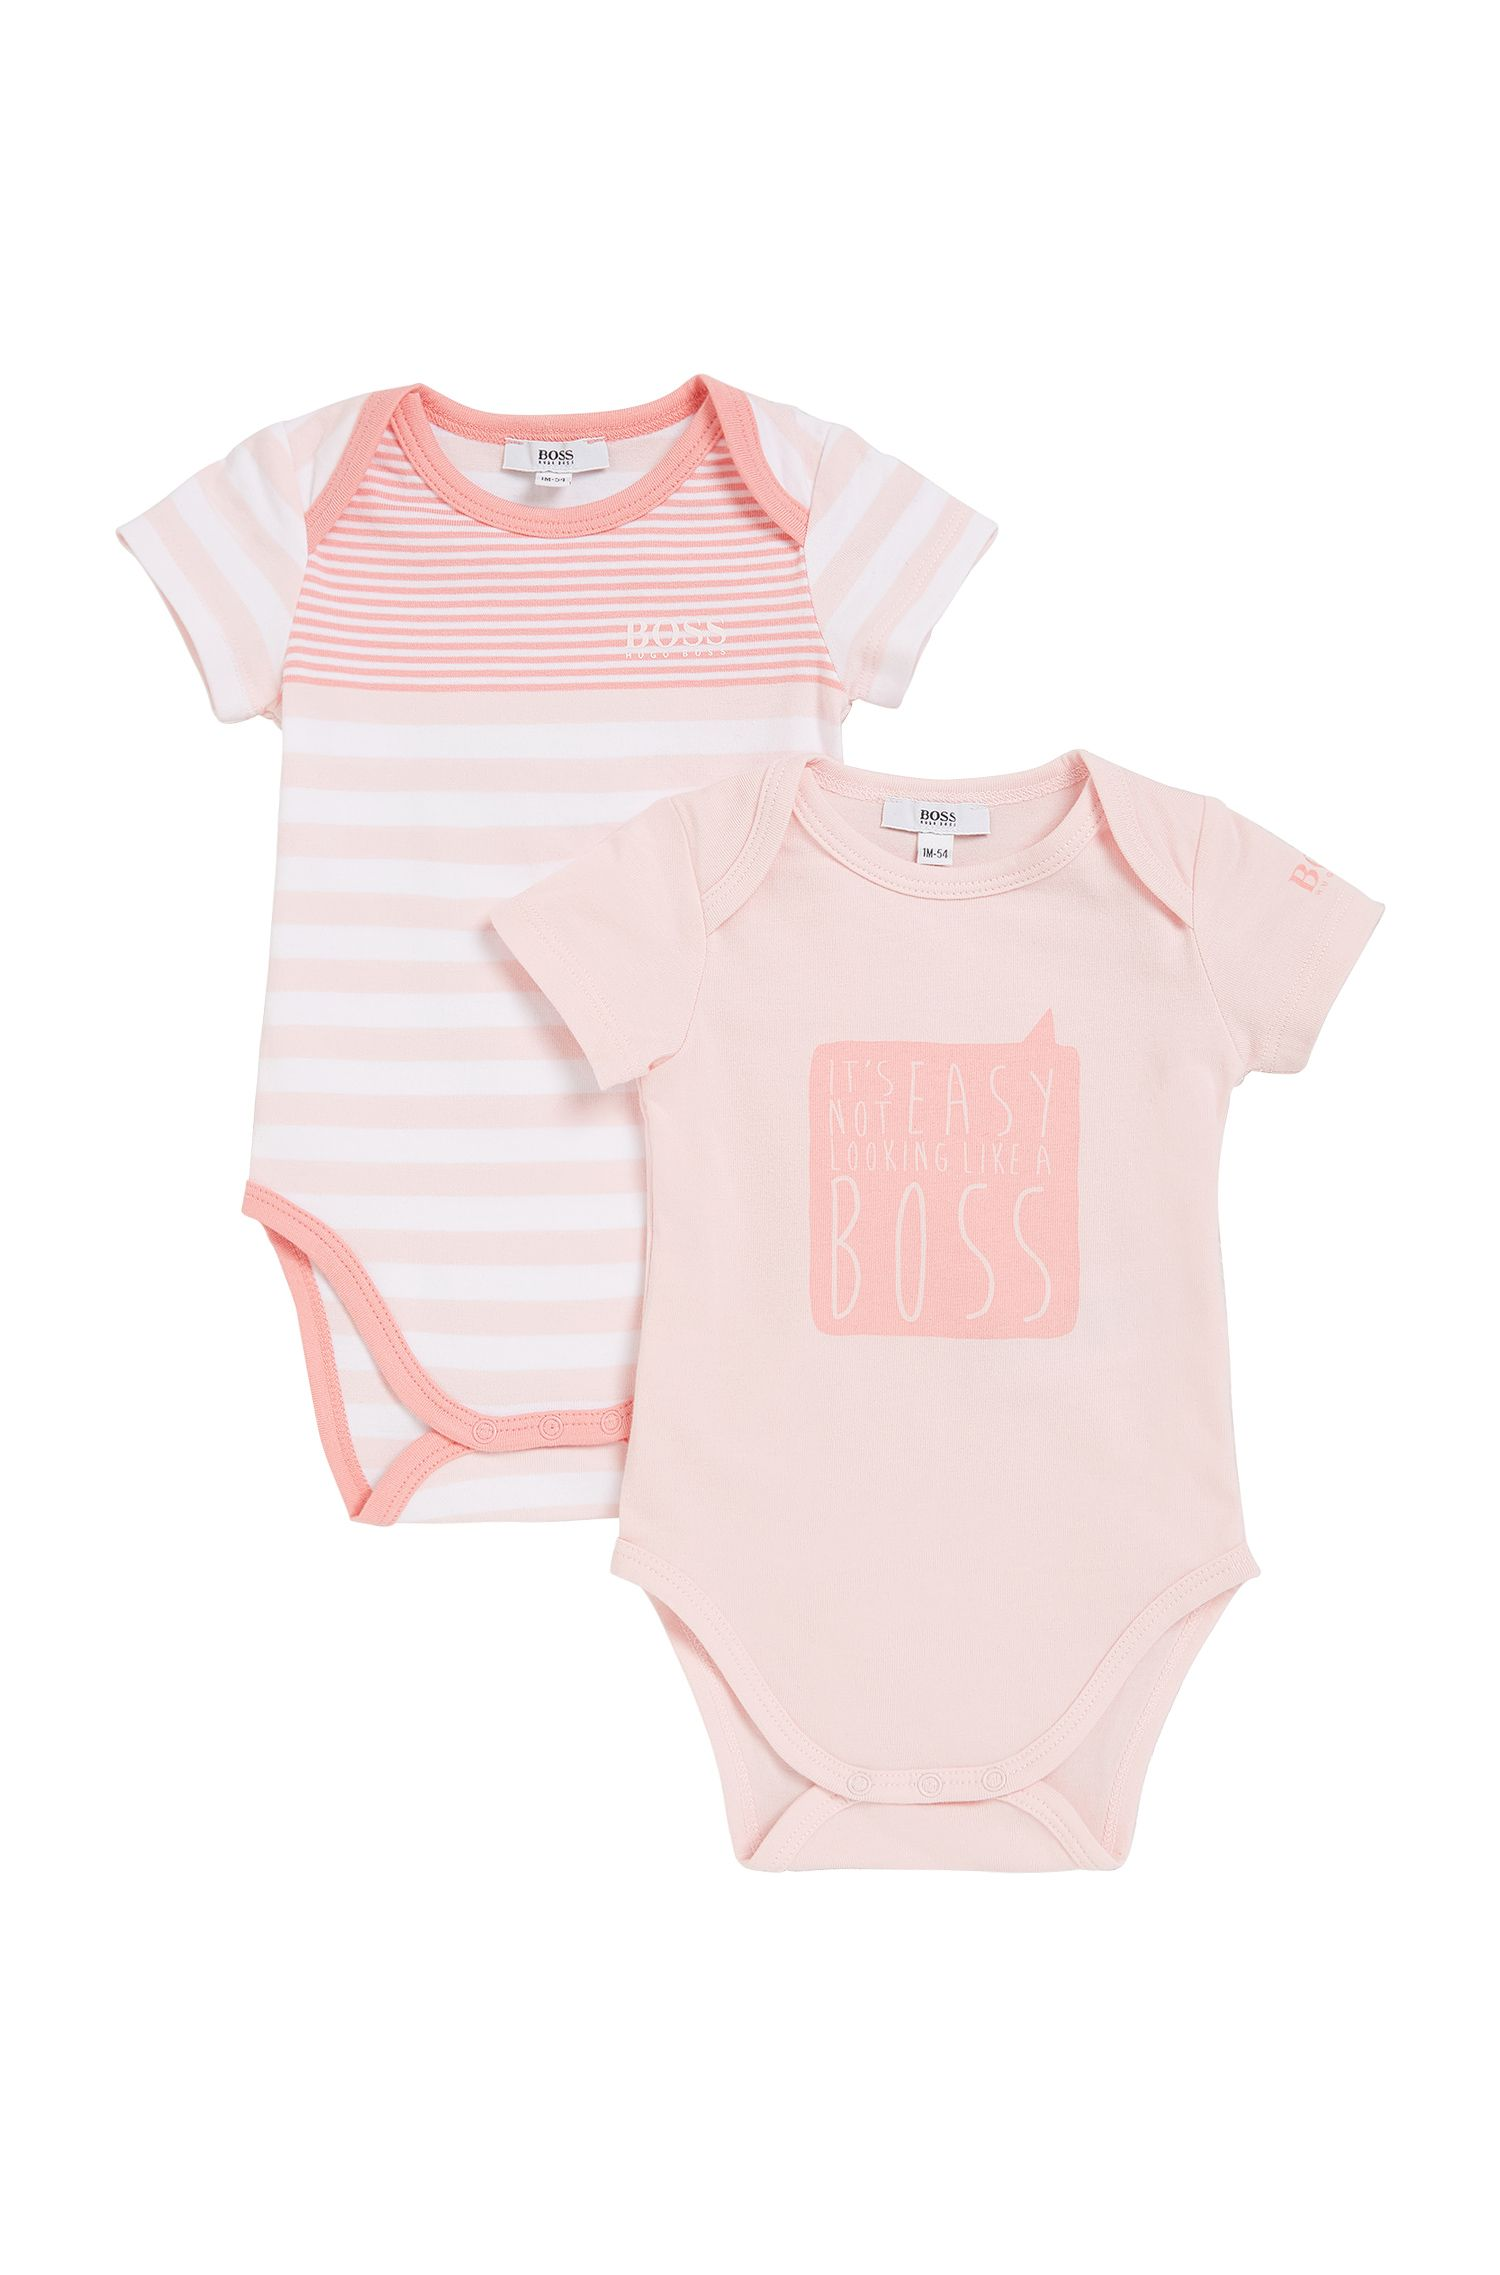 Baby-Bodys aus Single-Jersey im Zweier-Pack